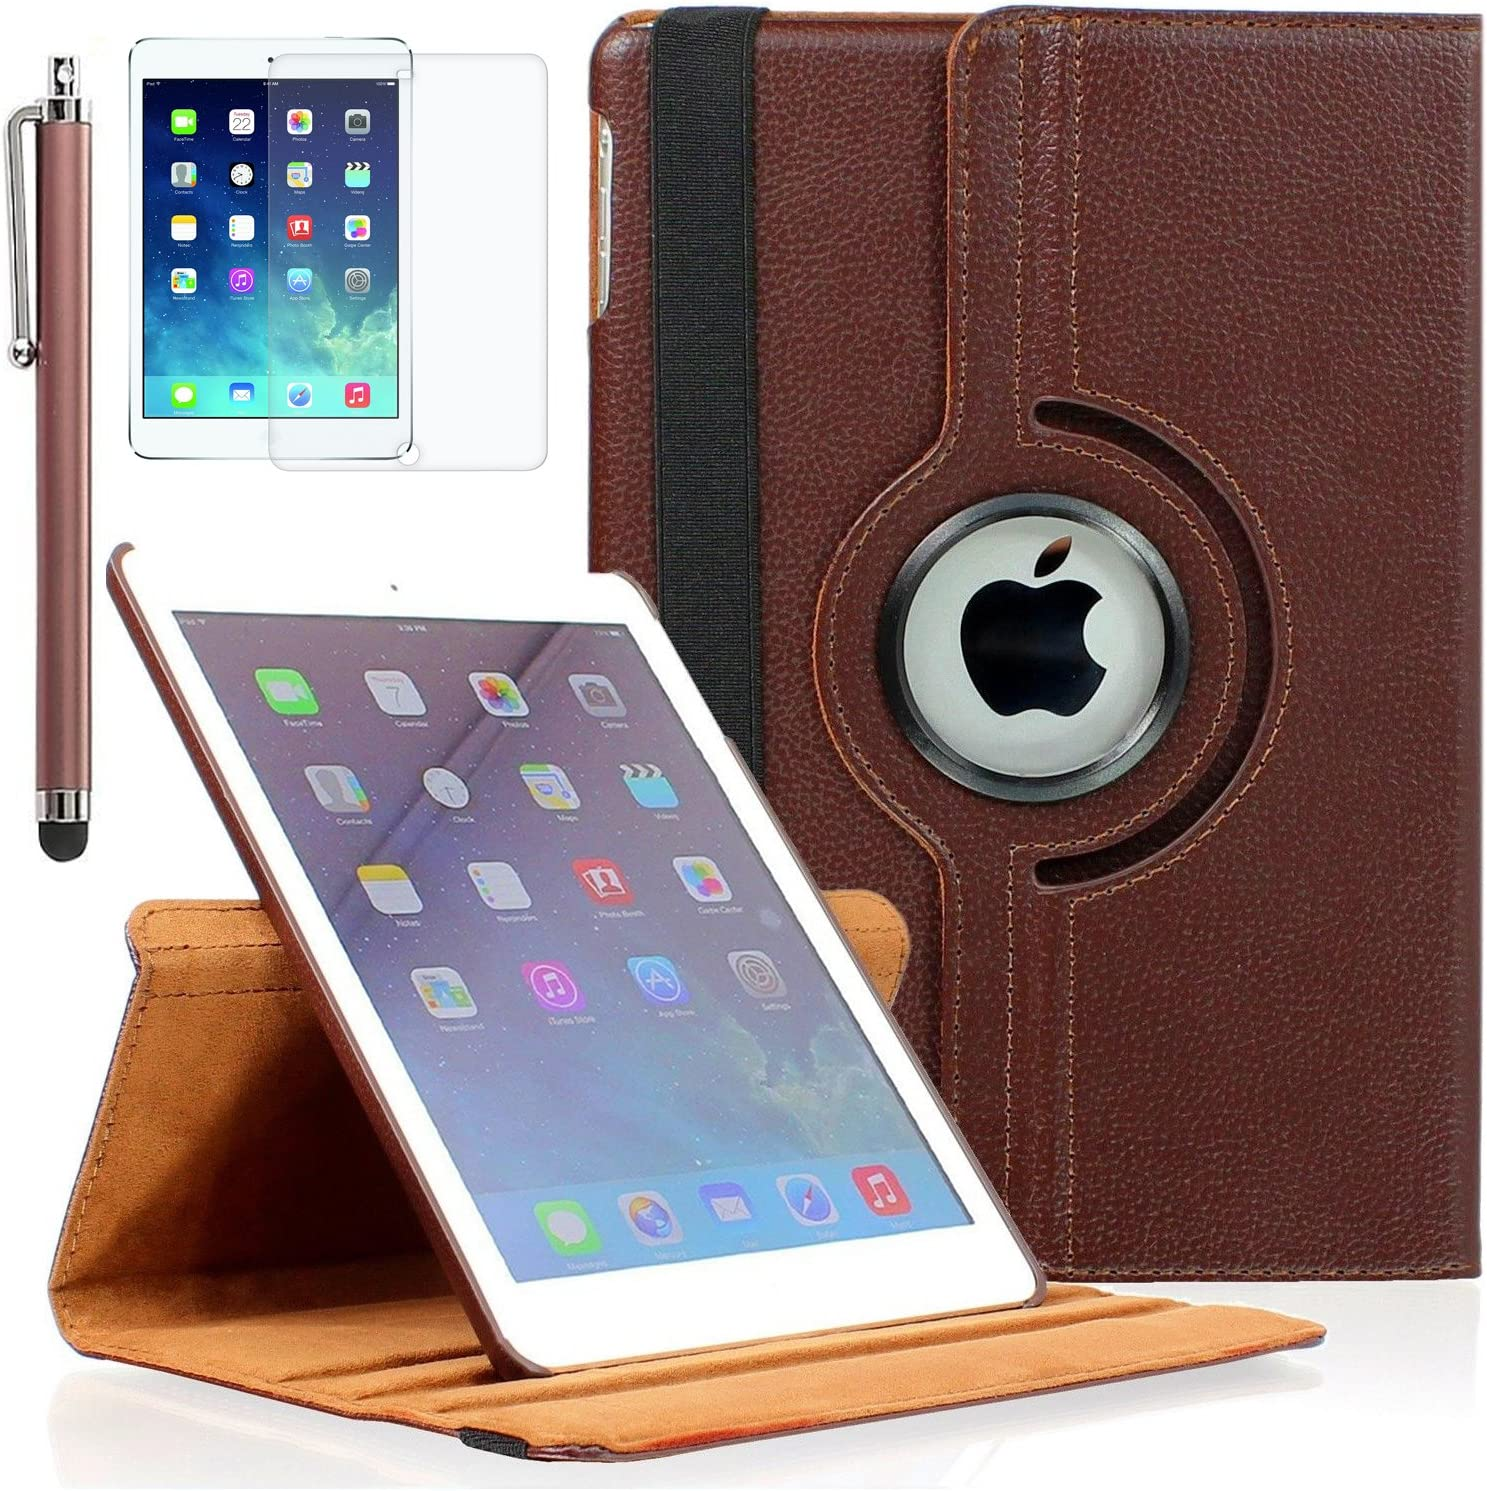 Viero iPad 9.7 Case 2018/2017, iPad Air Case 360 Degree Rotating Multiple Angles Stand Smart Protective Hard Back Auto Sleep Wake Cover for iPad 9.7 inch (6th Gen, 5th Gen)/ iPad Air, Brown